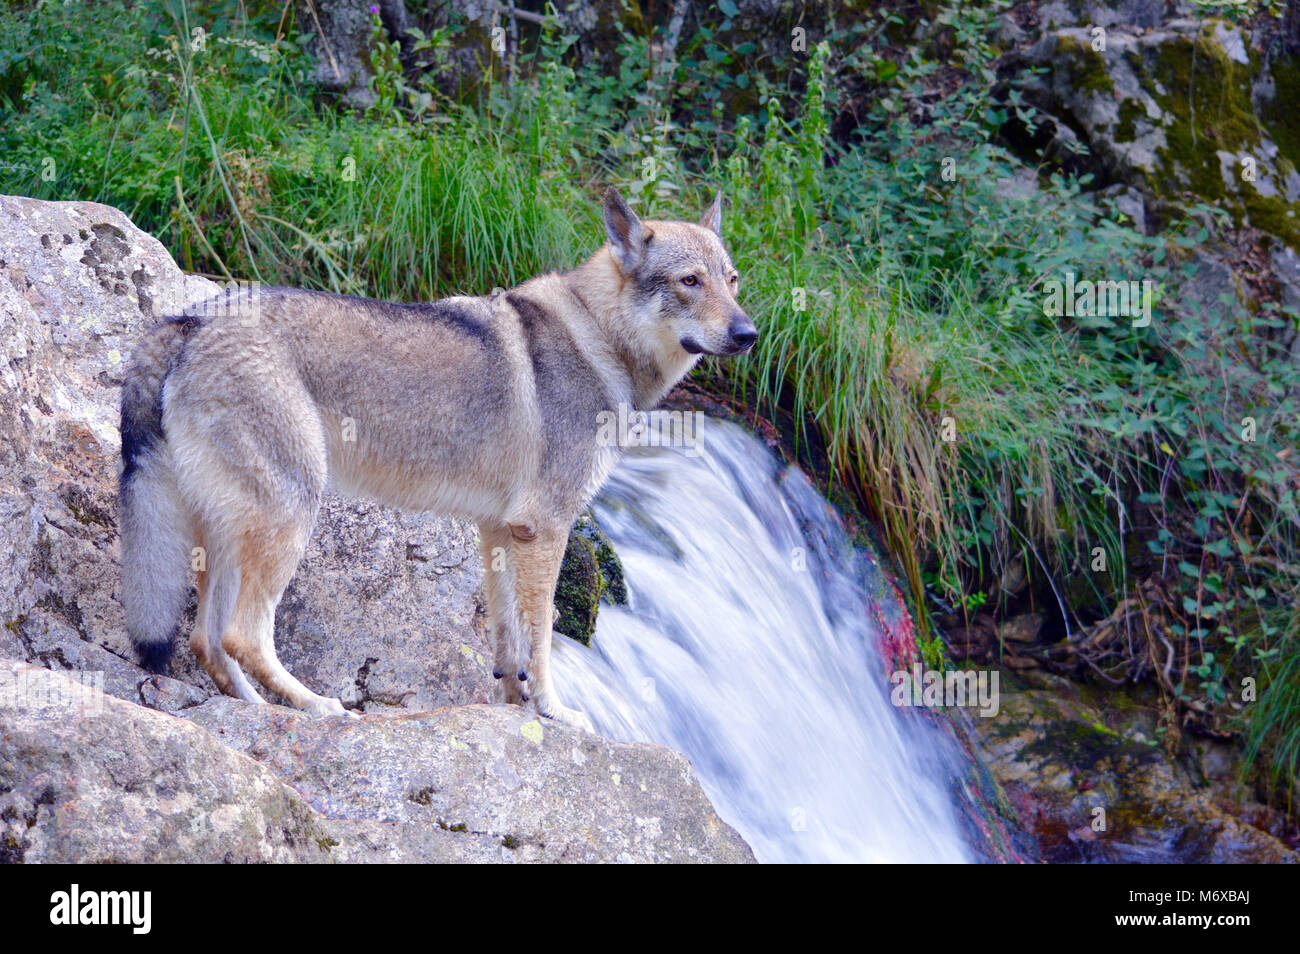 Czechoslovakian wolfhound in a stream - Stock Image